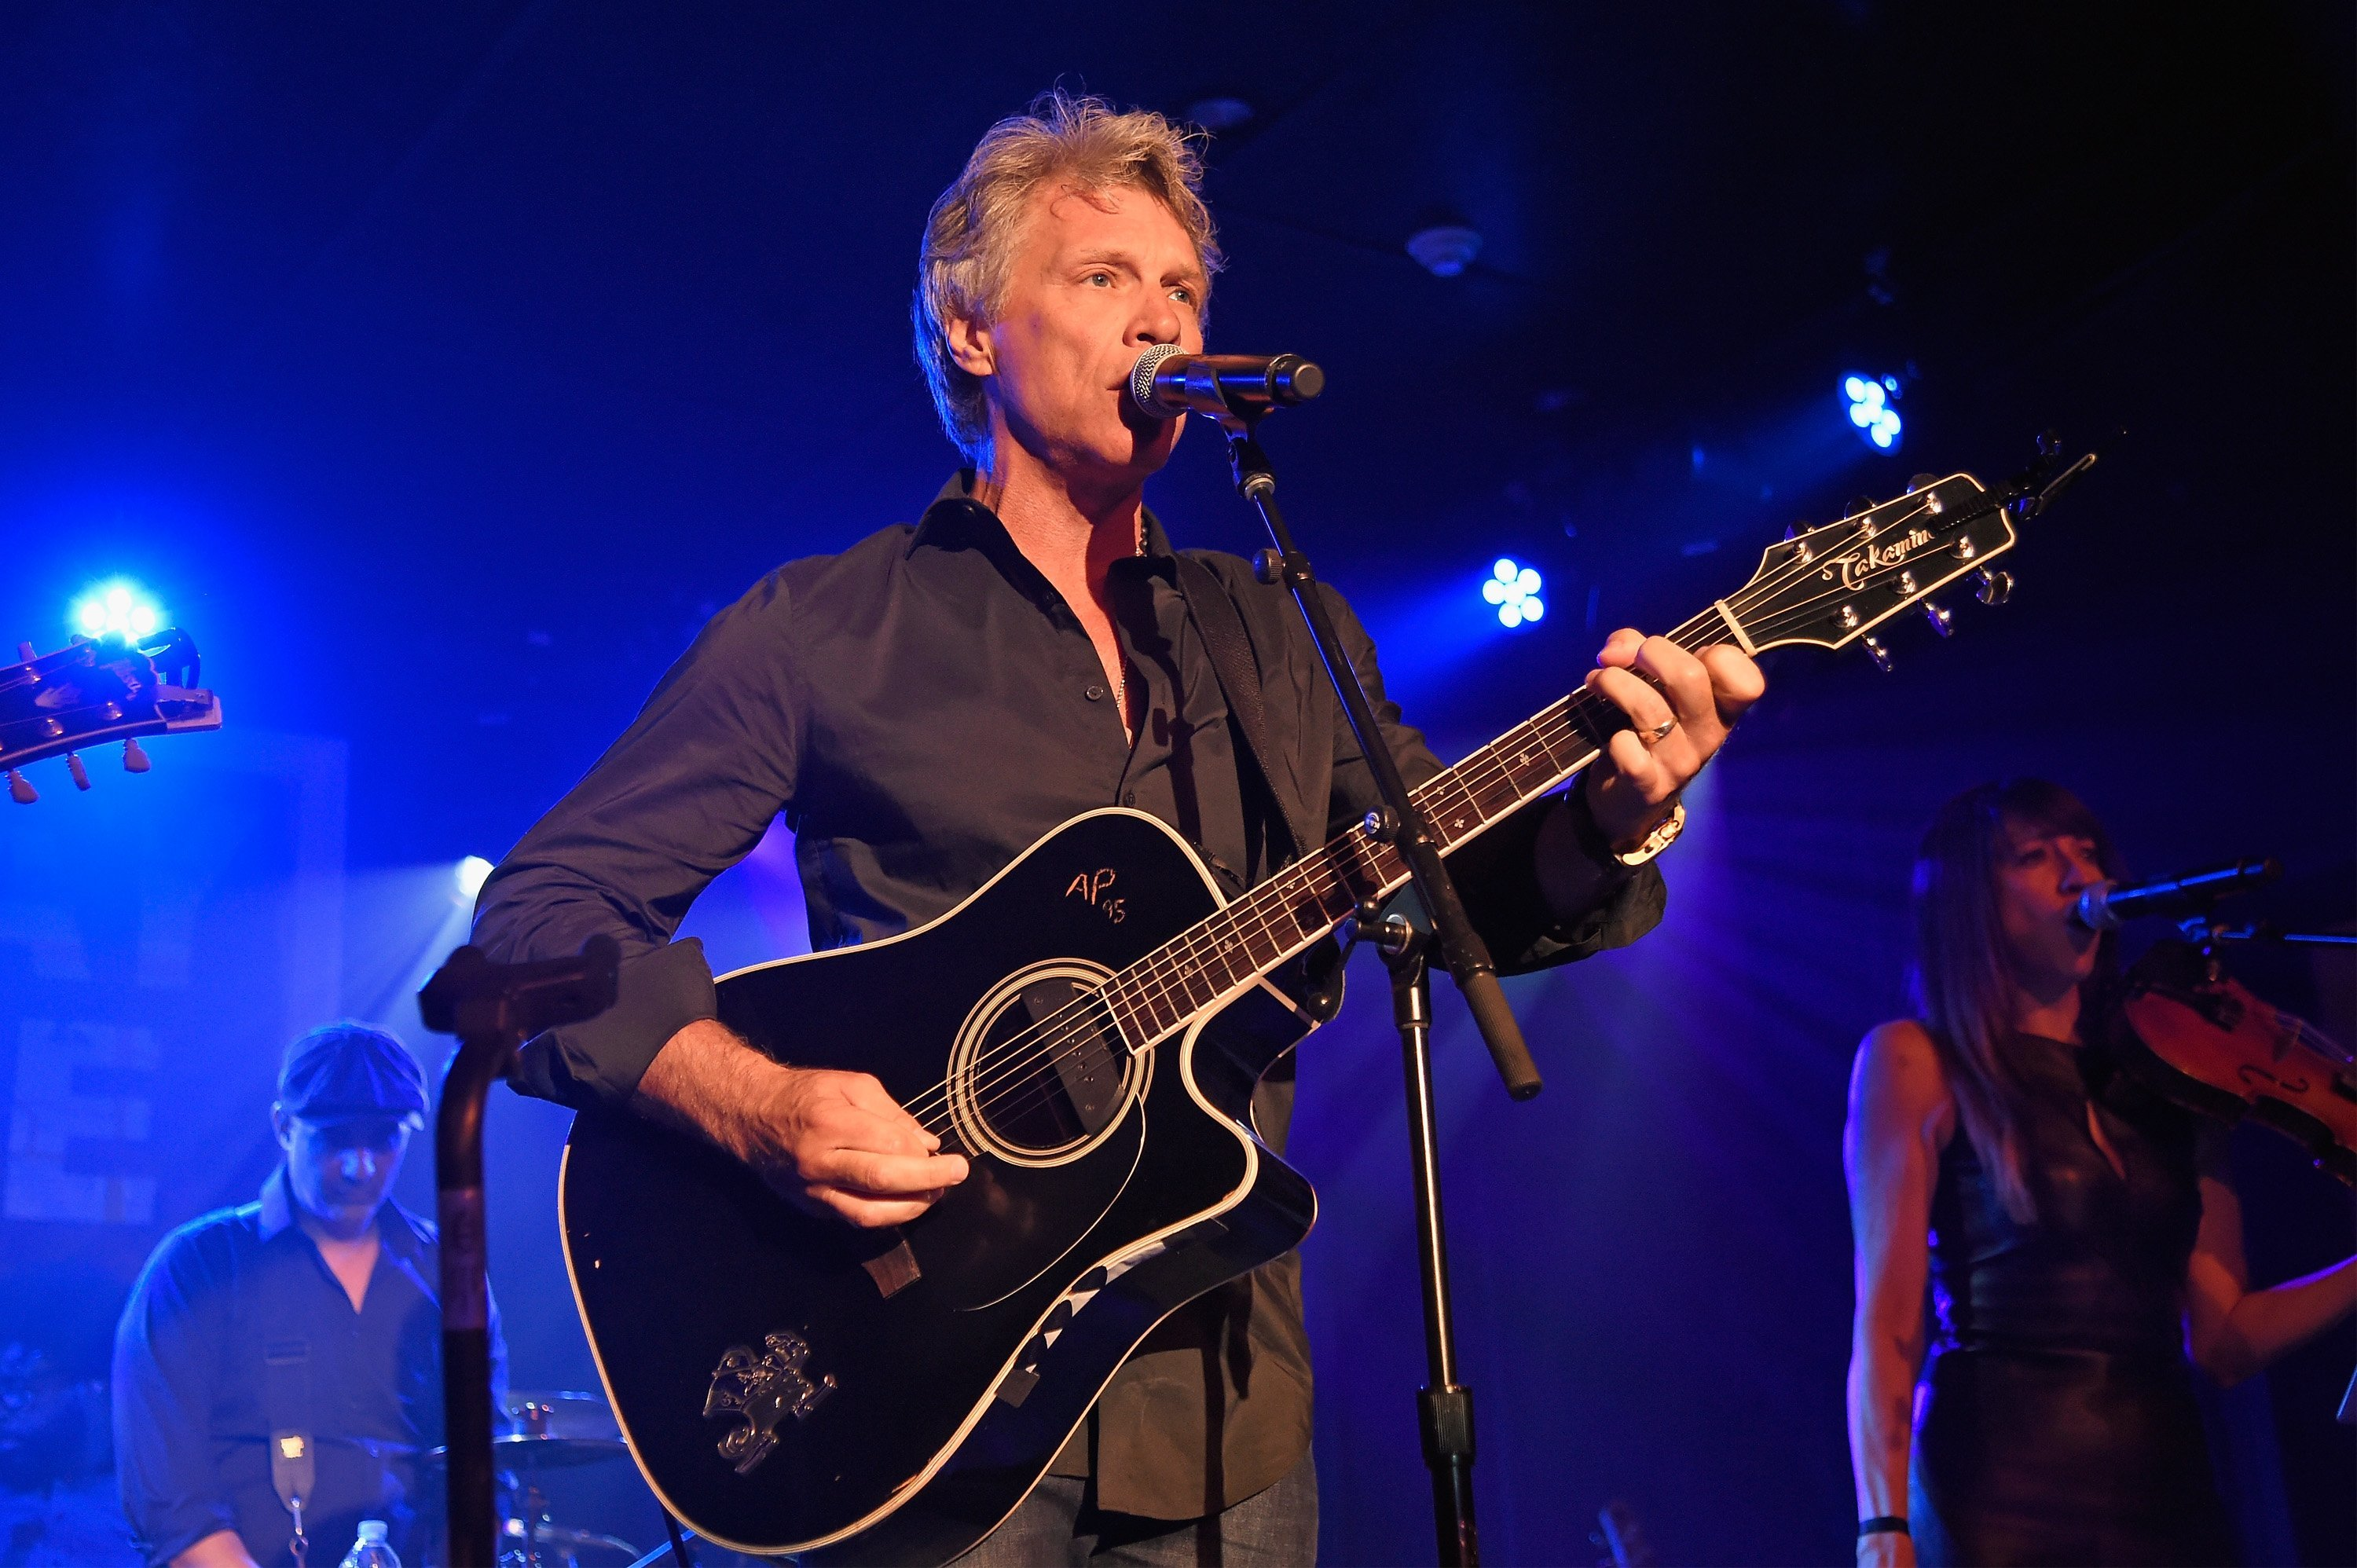 Jon Bon Jovi performing onstage during Apollo in the Hamptons 2018. | Source: Getty Images